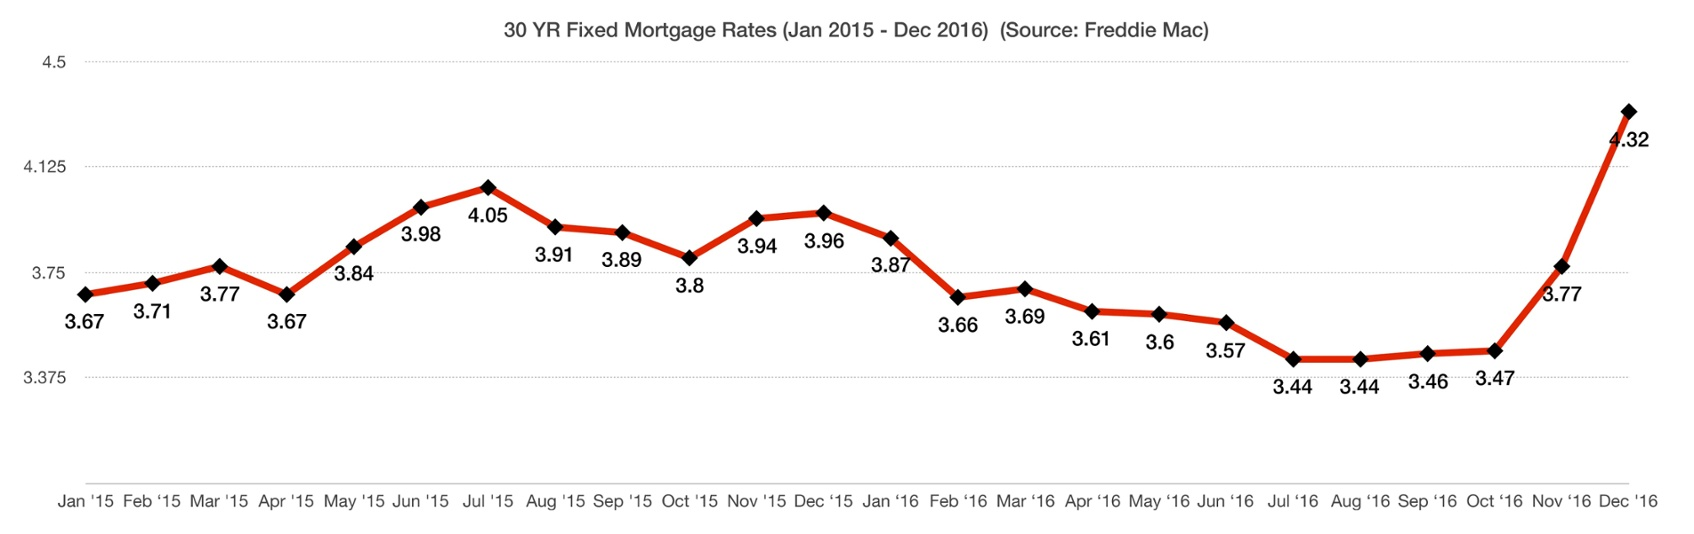 Home Price Growth Rate Double Wage Growth Rate, Mortgage Rates on